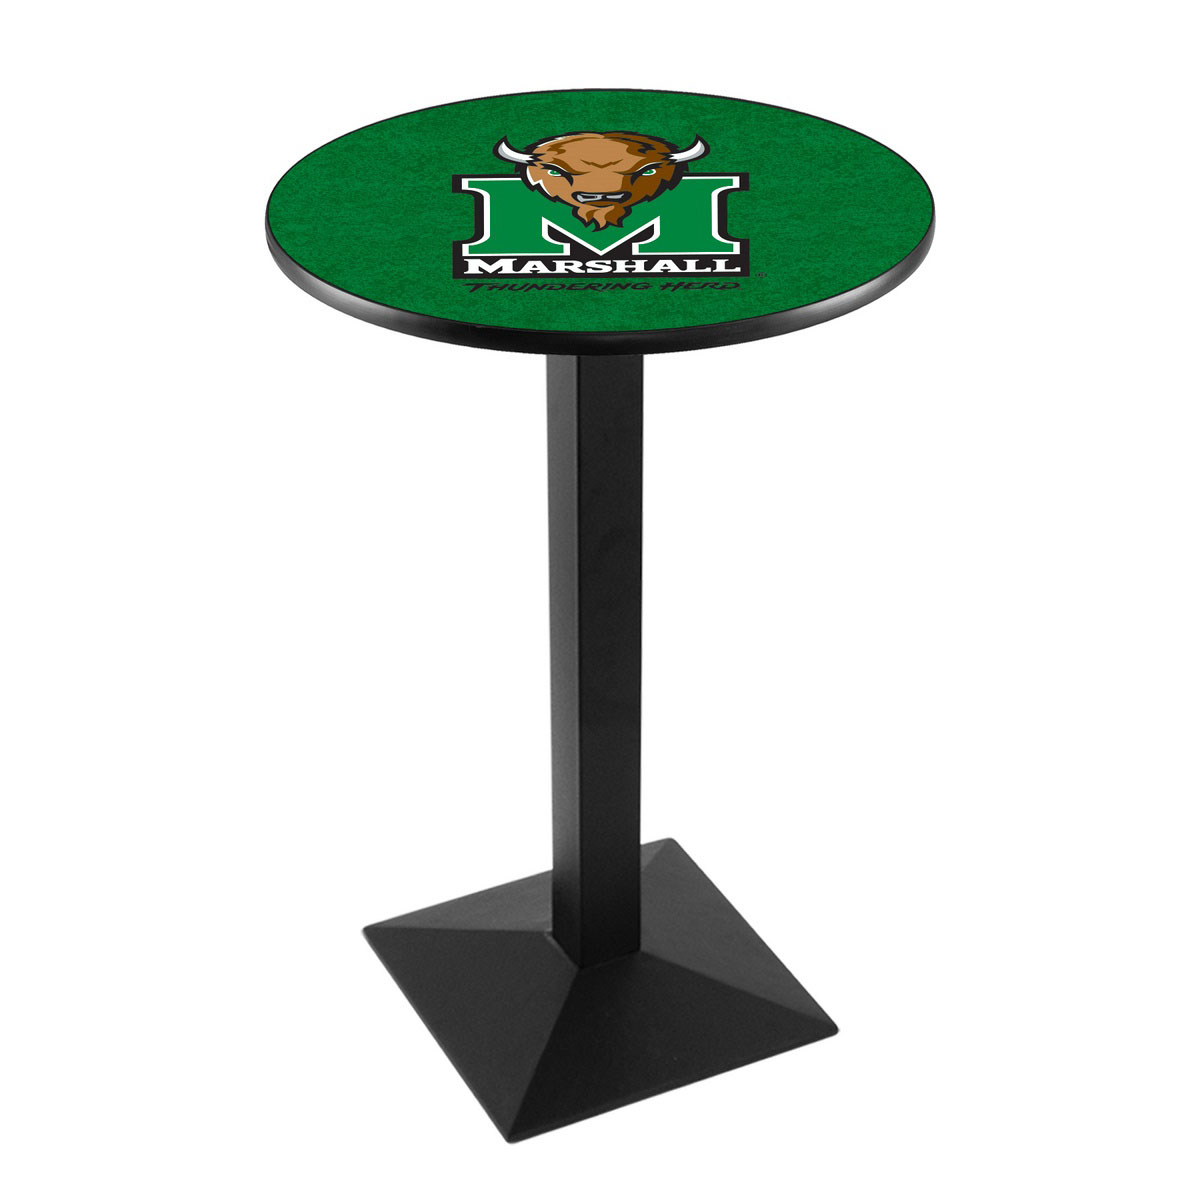 Exquisite Marshall University Logo Pub Bar Table Square Stand Product Photo